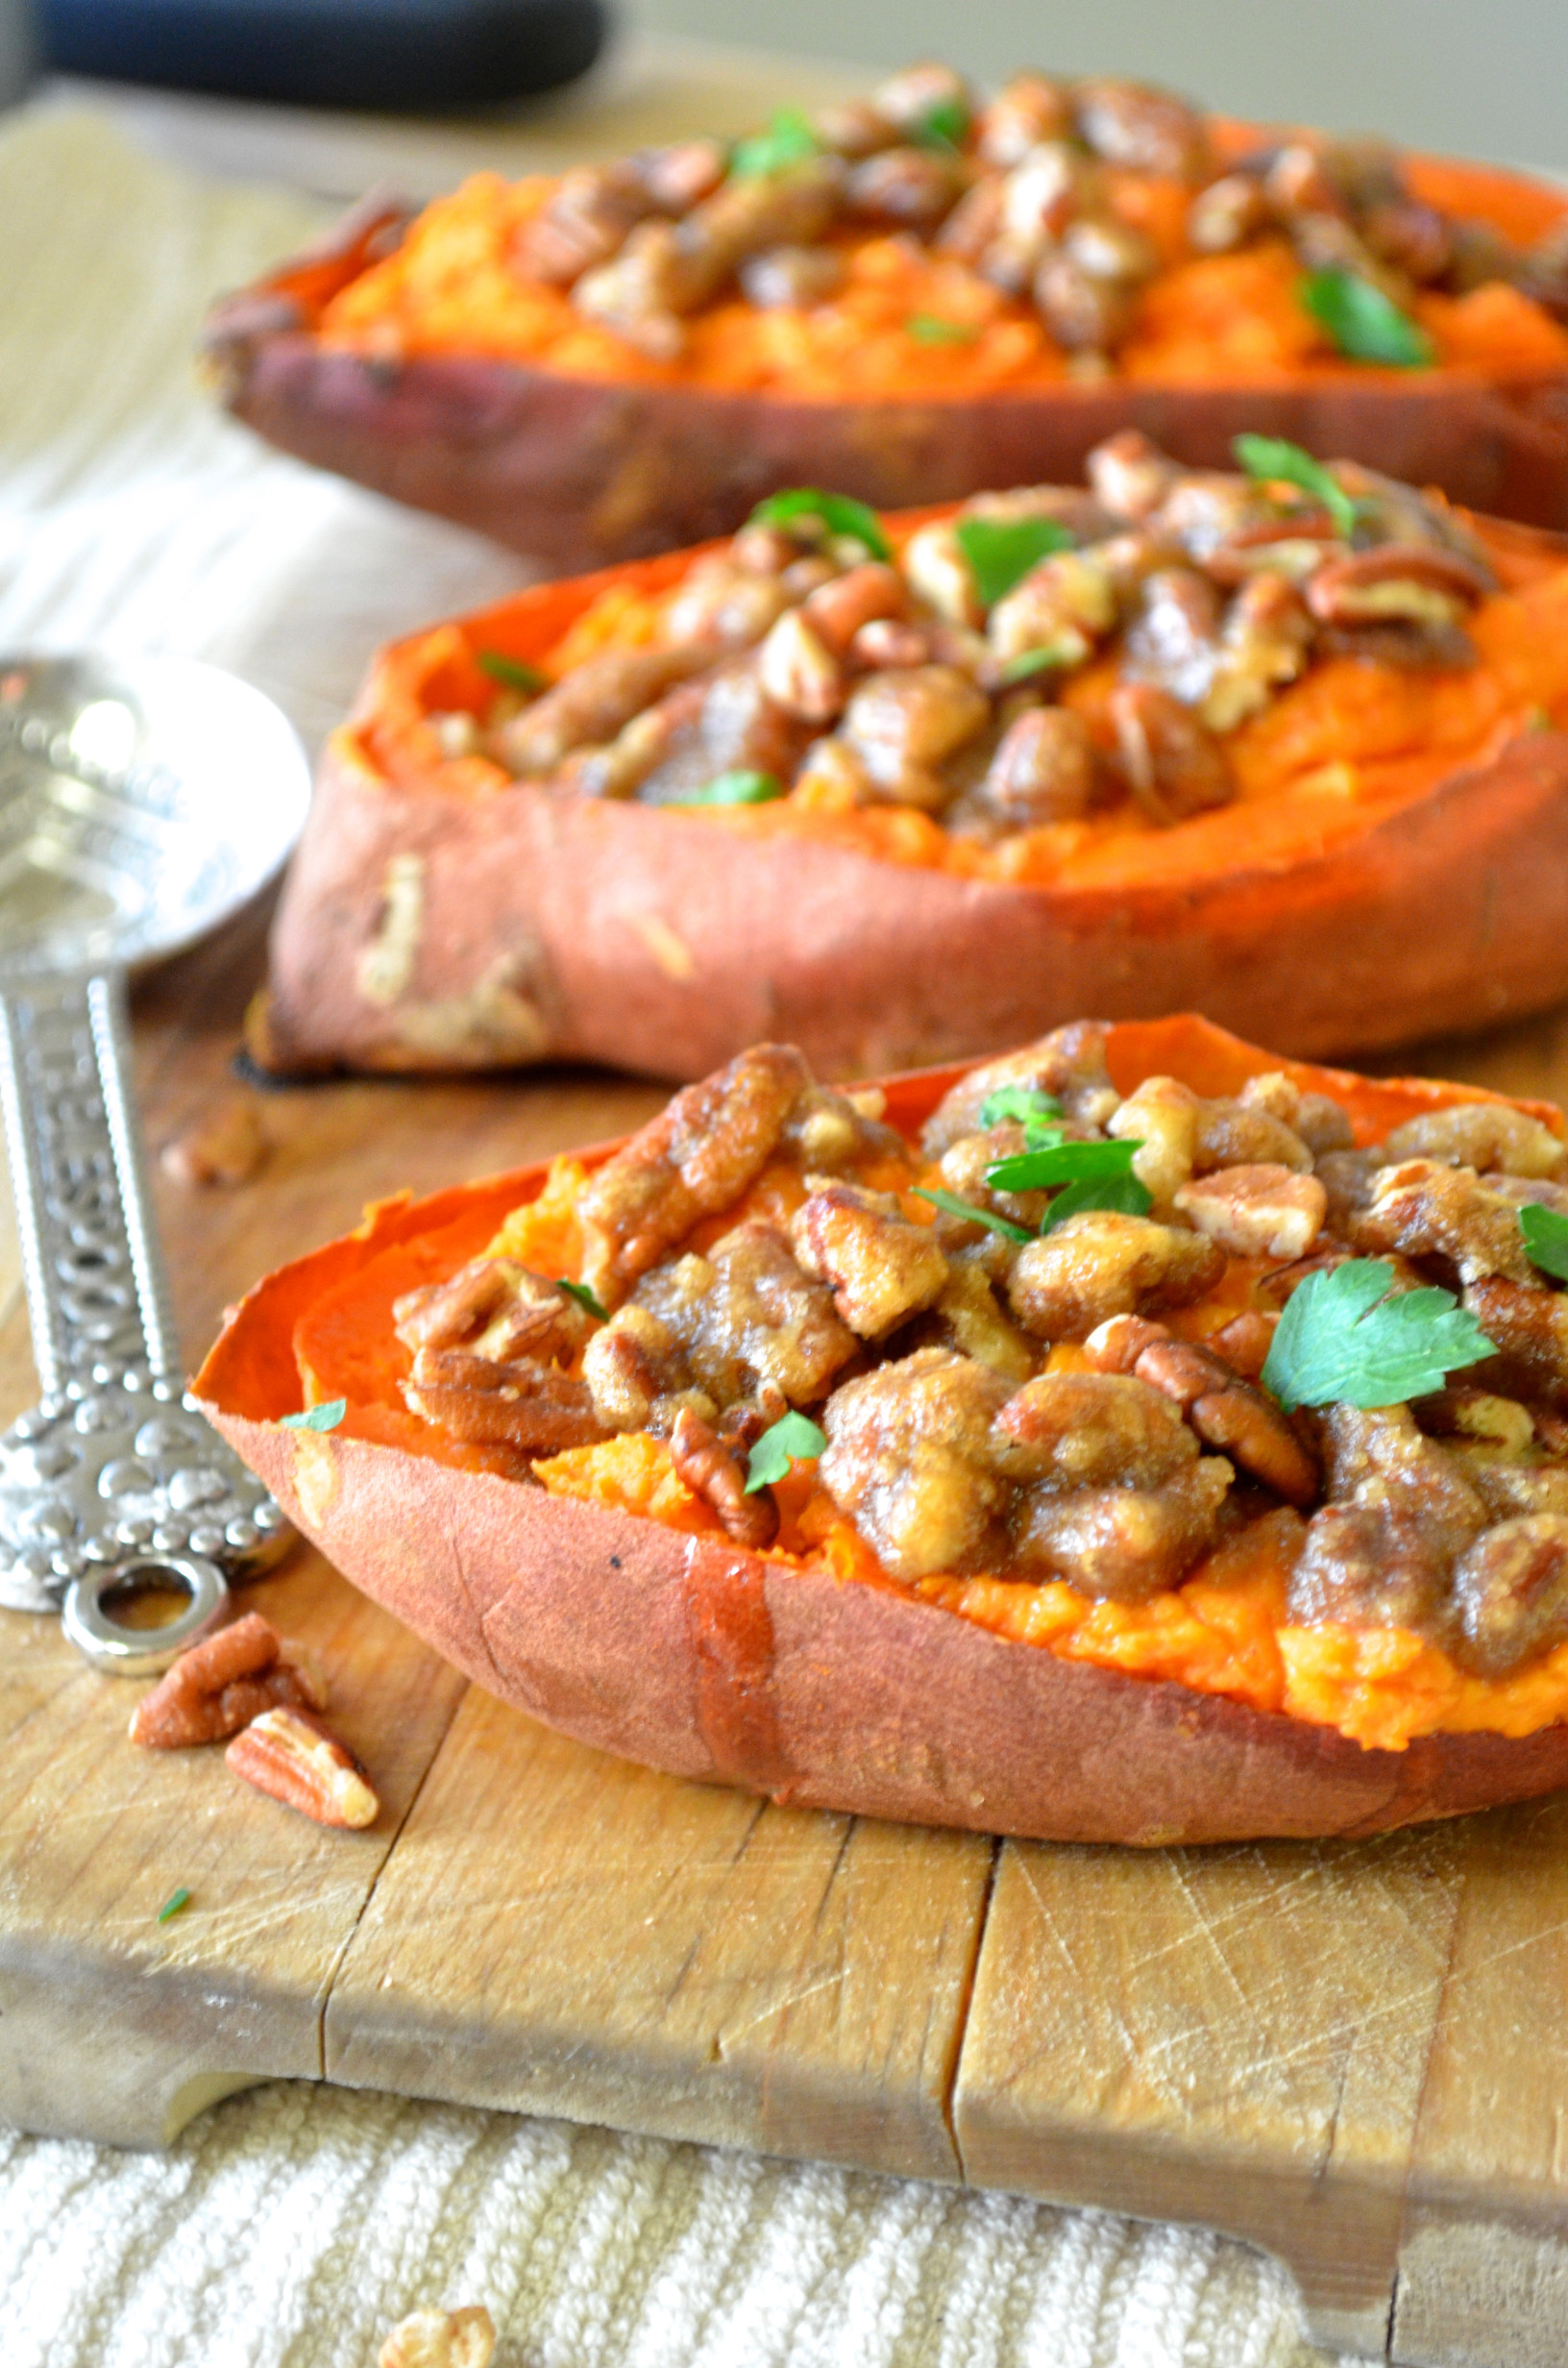 Baked Sweet Potato  Twice Baked Sweet Potatoes with Pecan Streusel